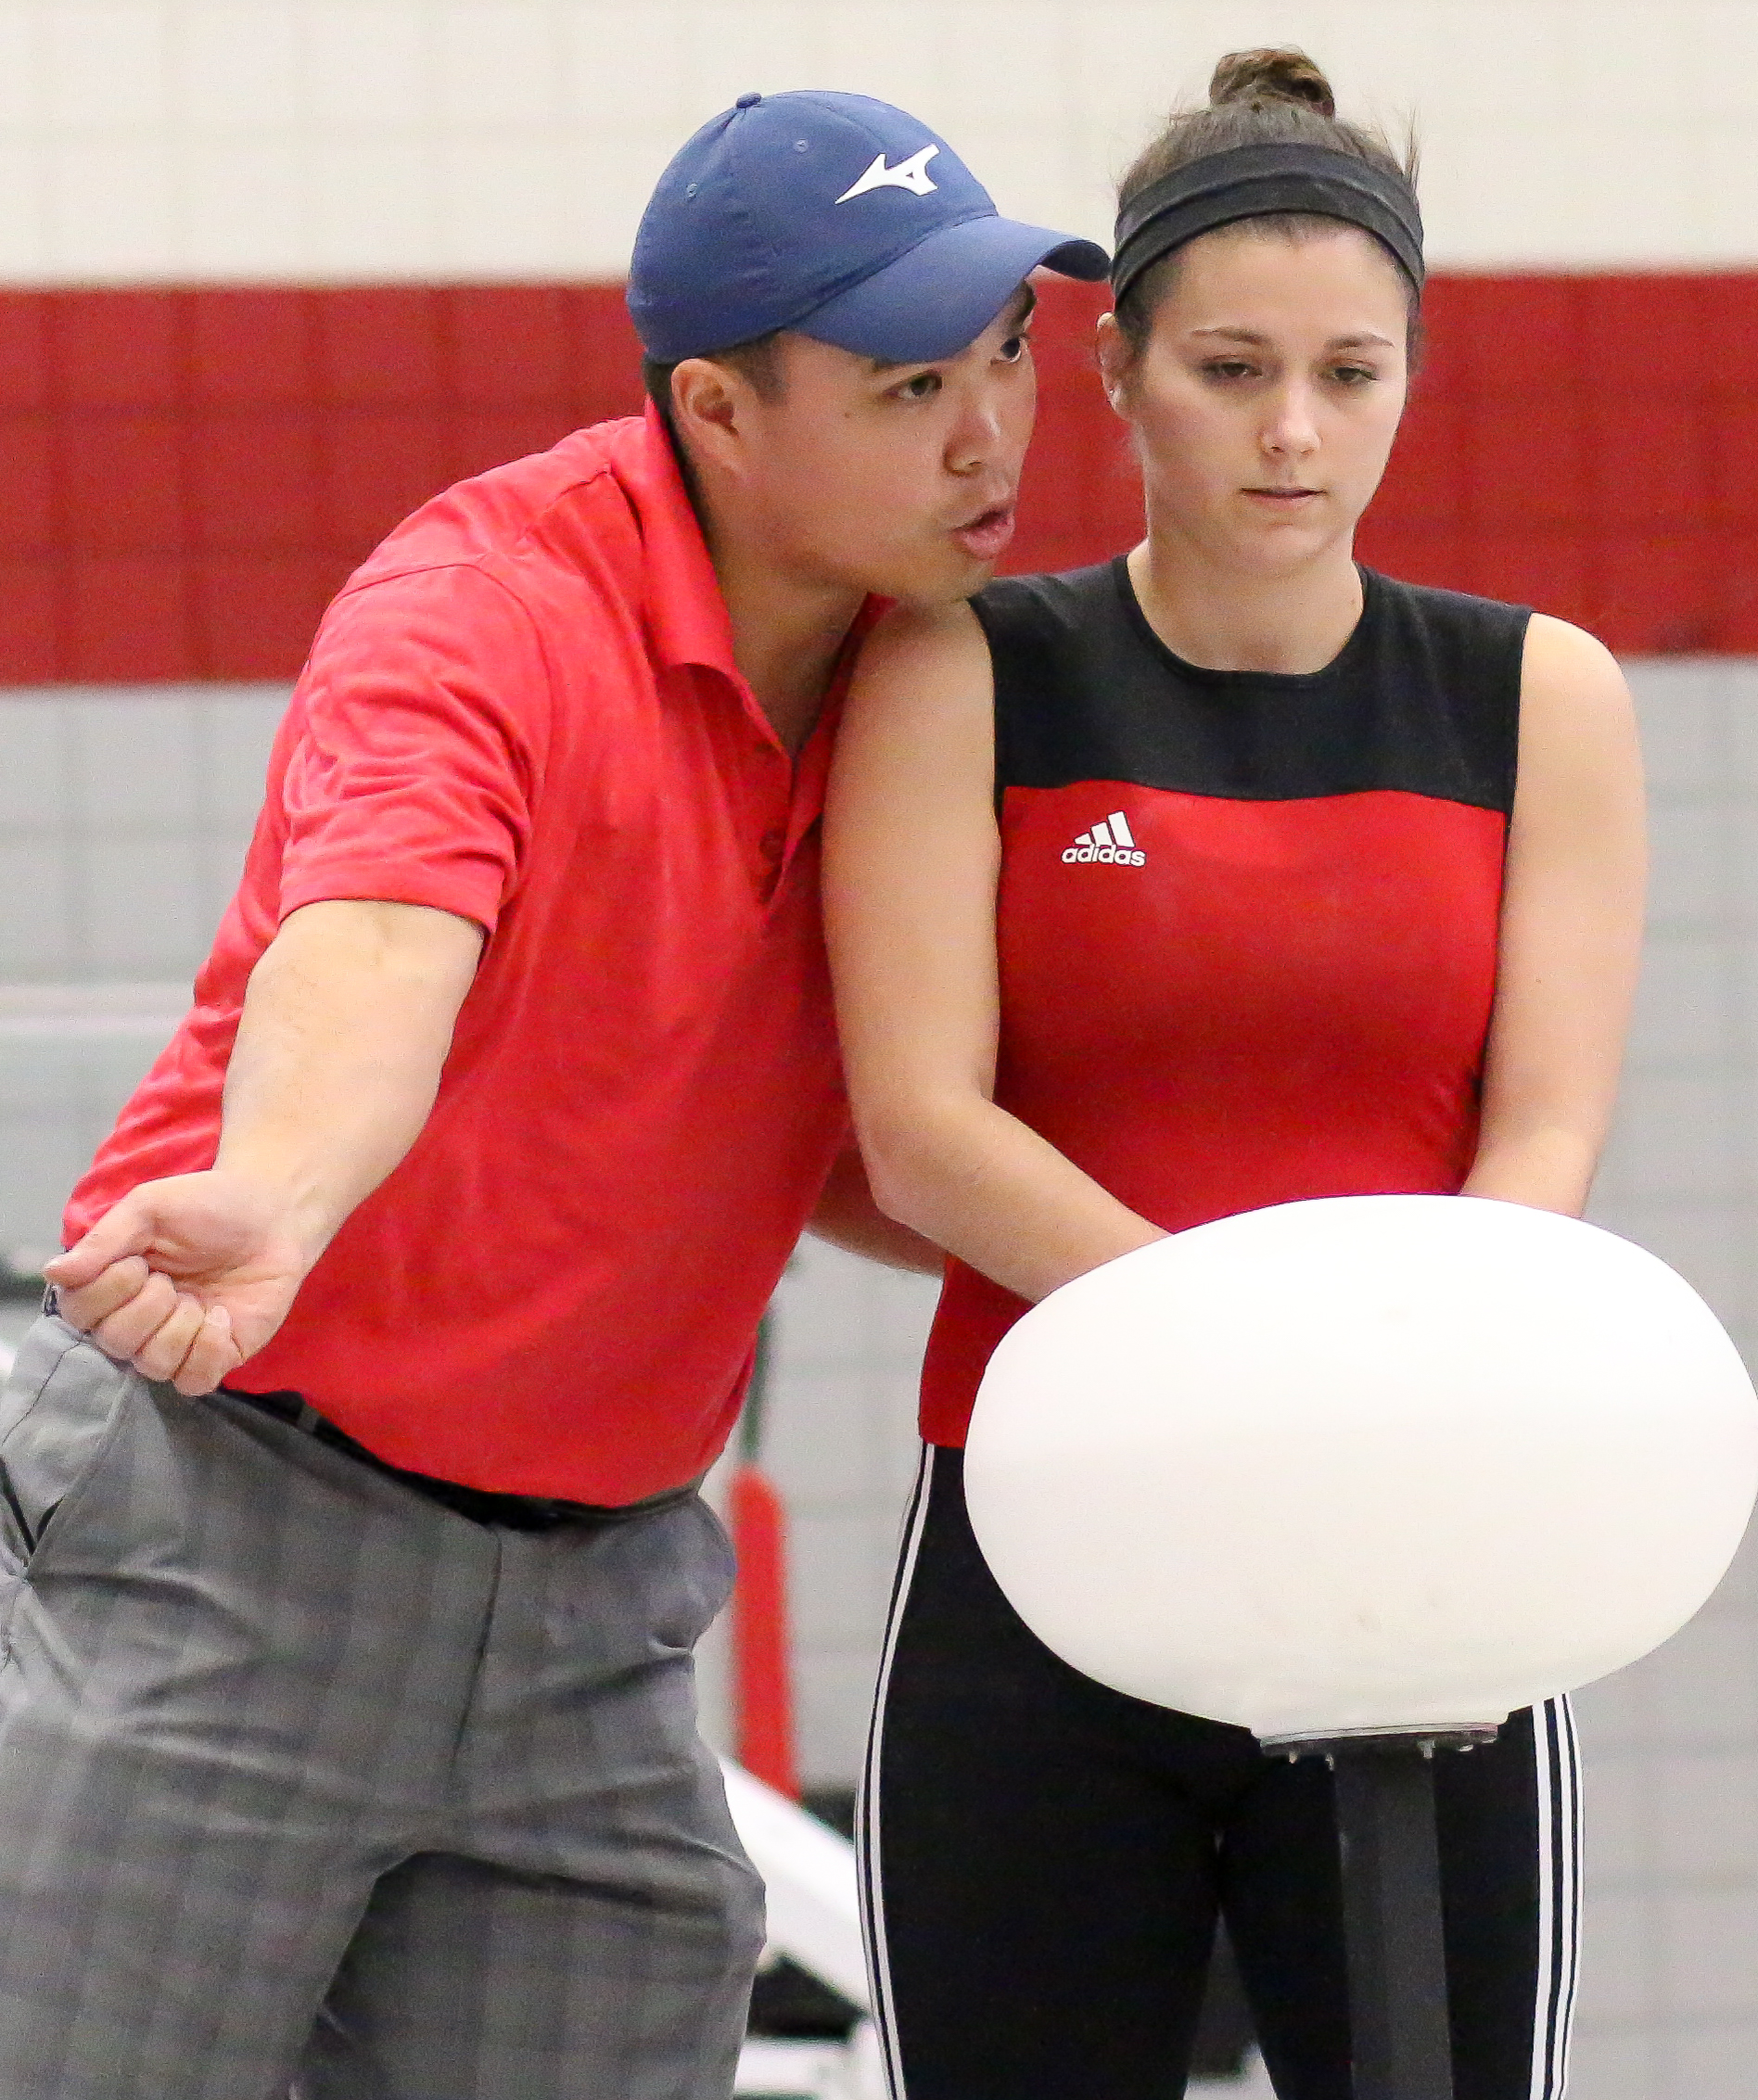 Coach Joel Quintong: Coaching his athlete from the   SHU Club Weightlifting Team  . The club represents   Sacred Heart University  , in the sport of Olympic-Style Weightlifting.